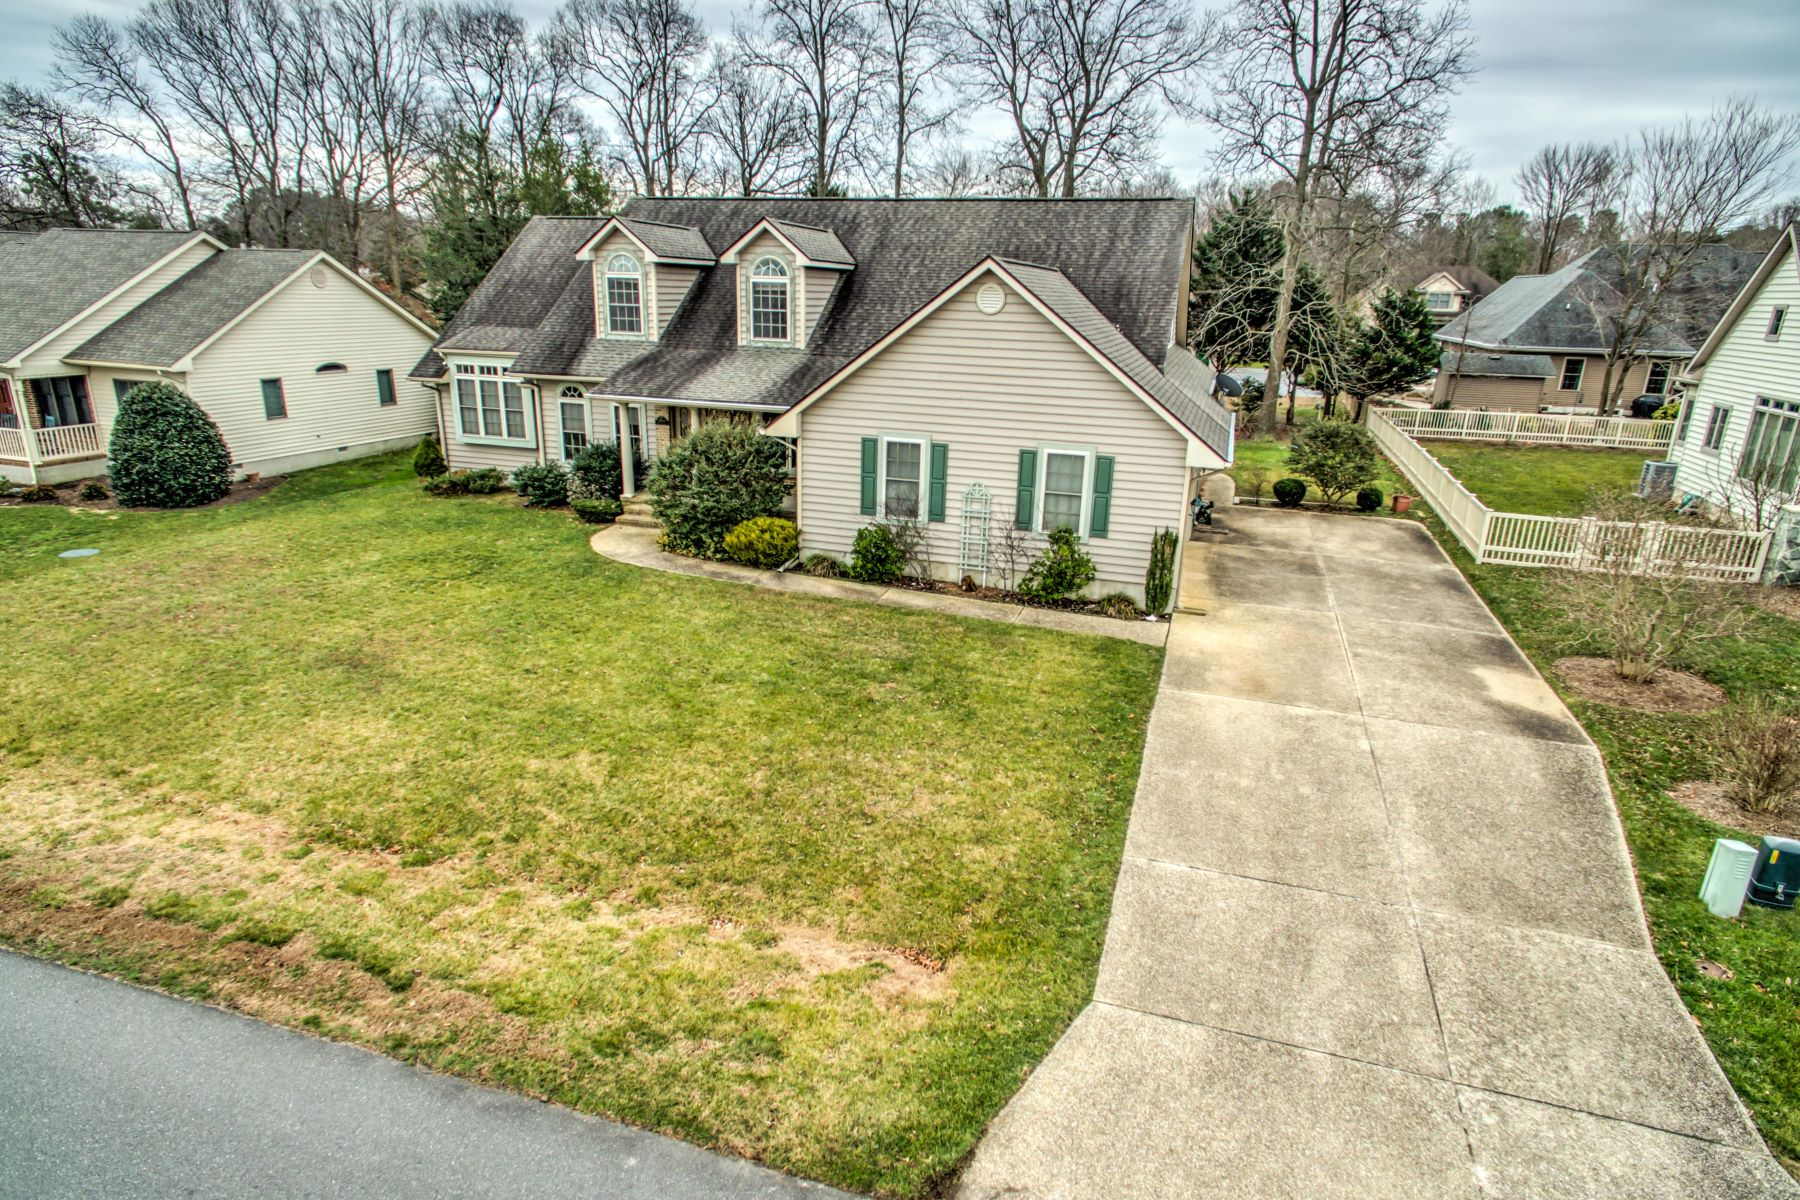 Additional photo for property listing at 34524 Quail Lane , Dagsboro, DE 19939 34524  Quail Ln, Dagsboro, Delaware 19939 United States